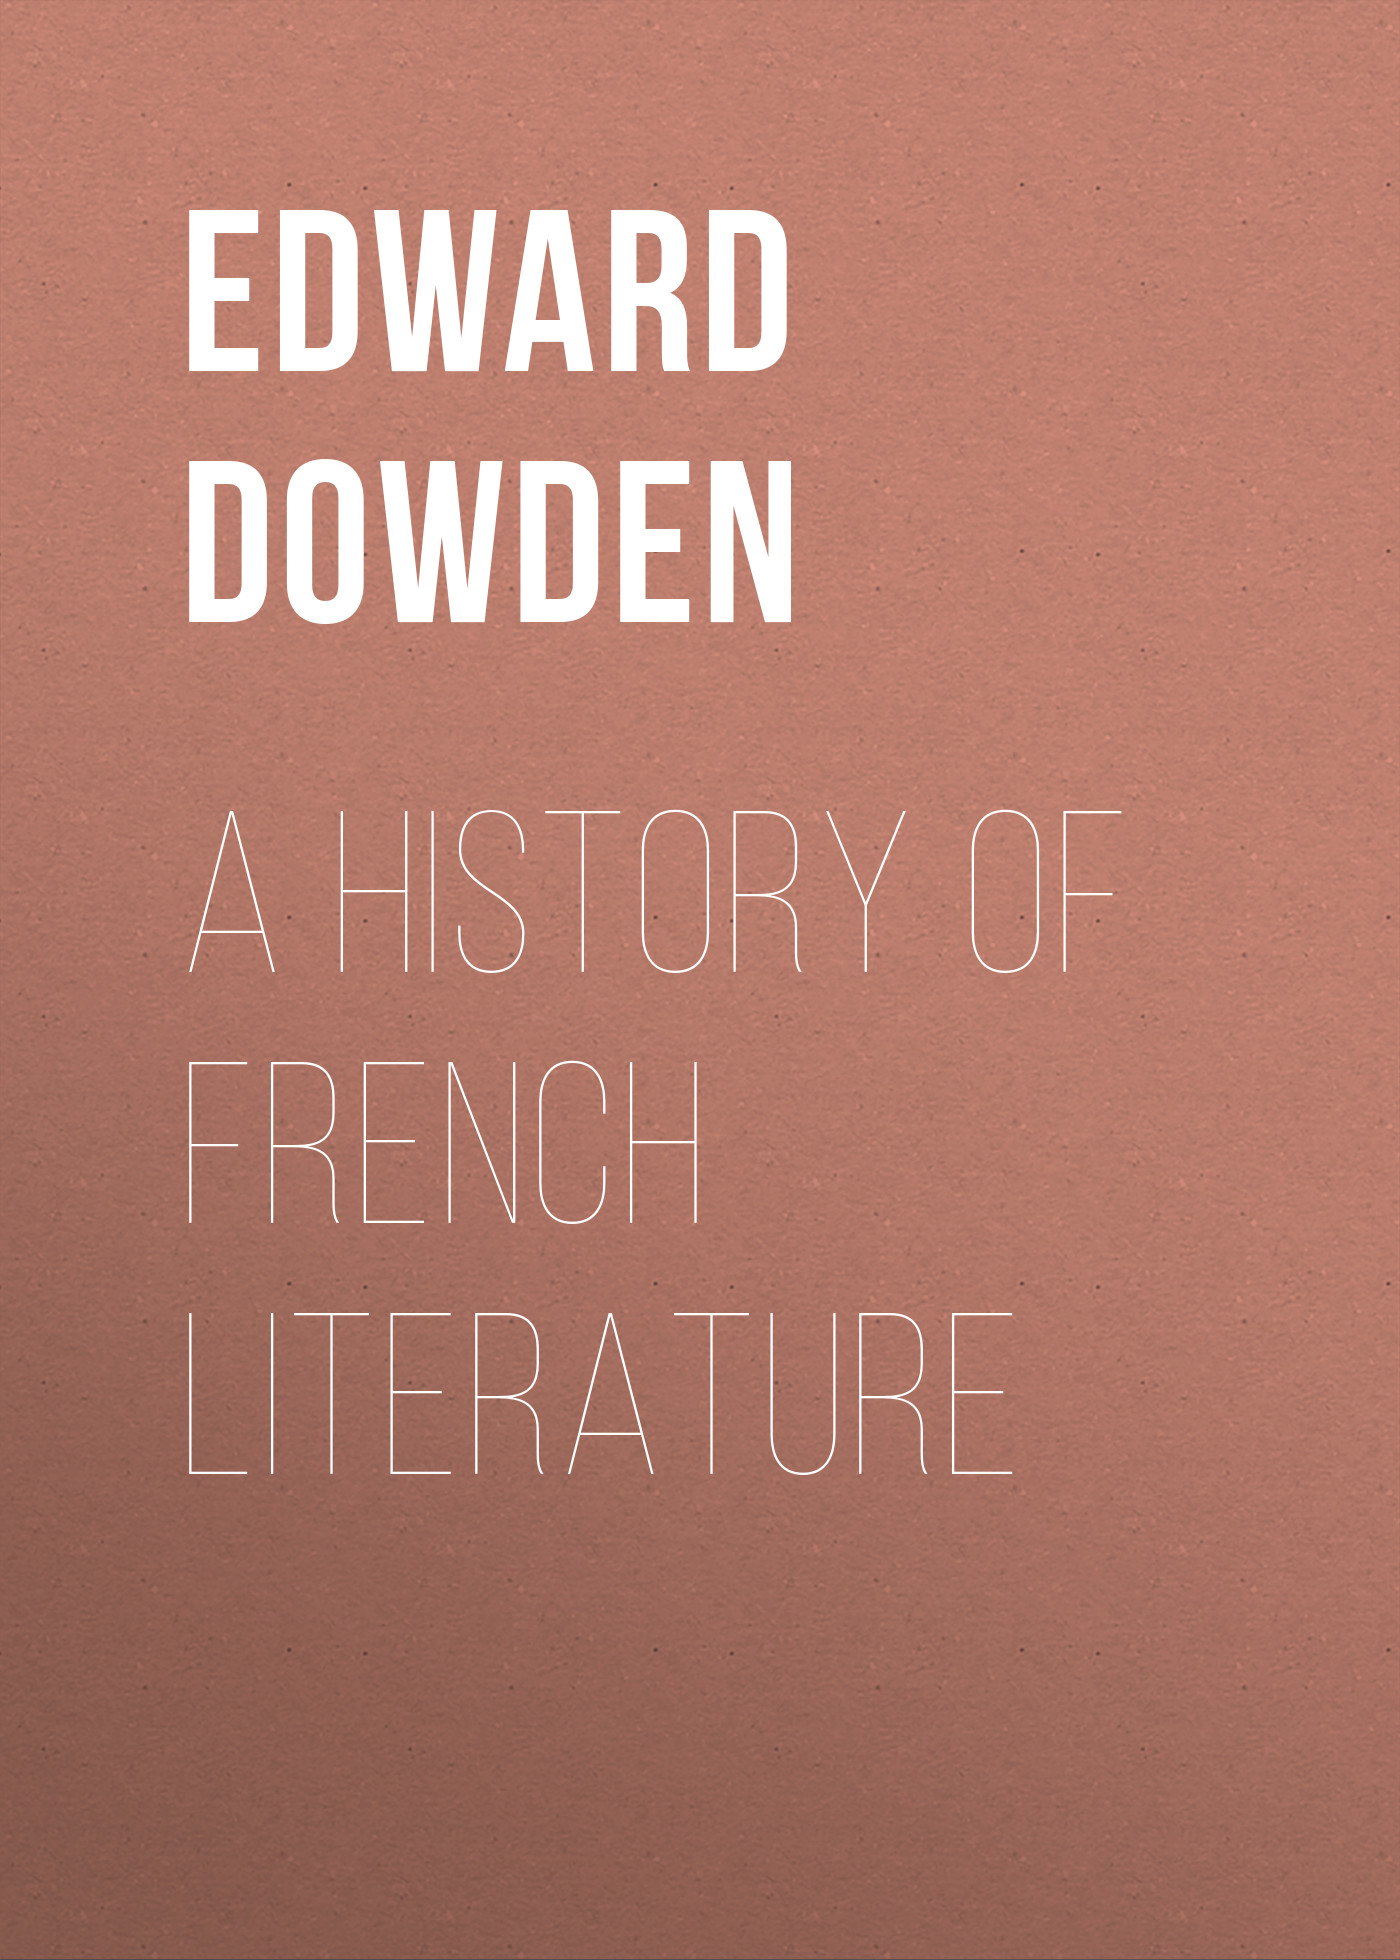 Edward Dowden A History of French Literature a new history of french literature paper